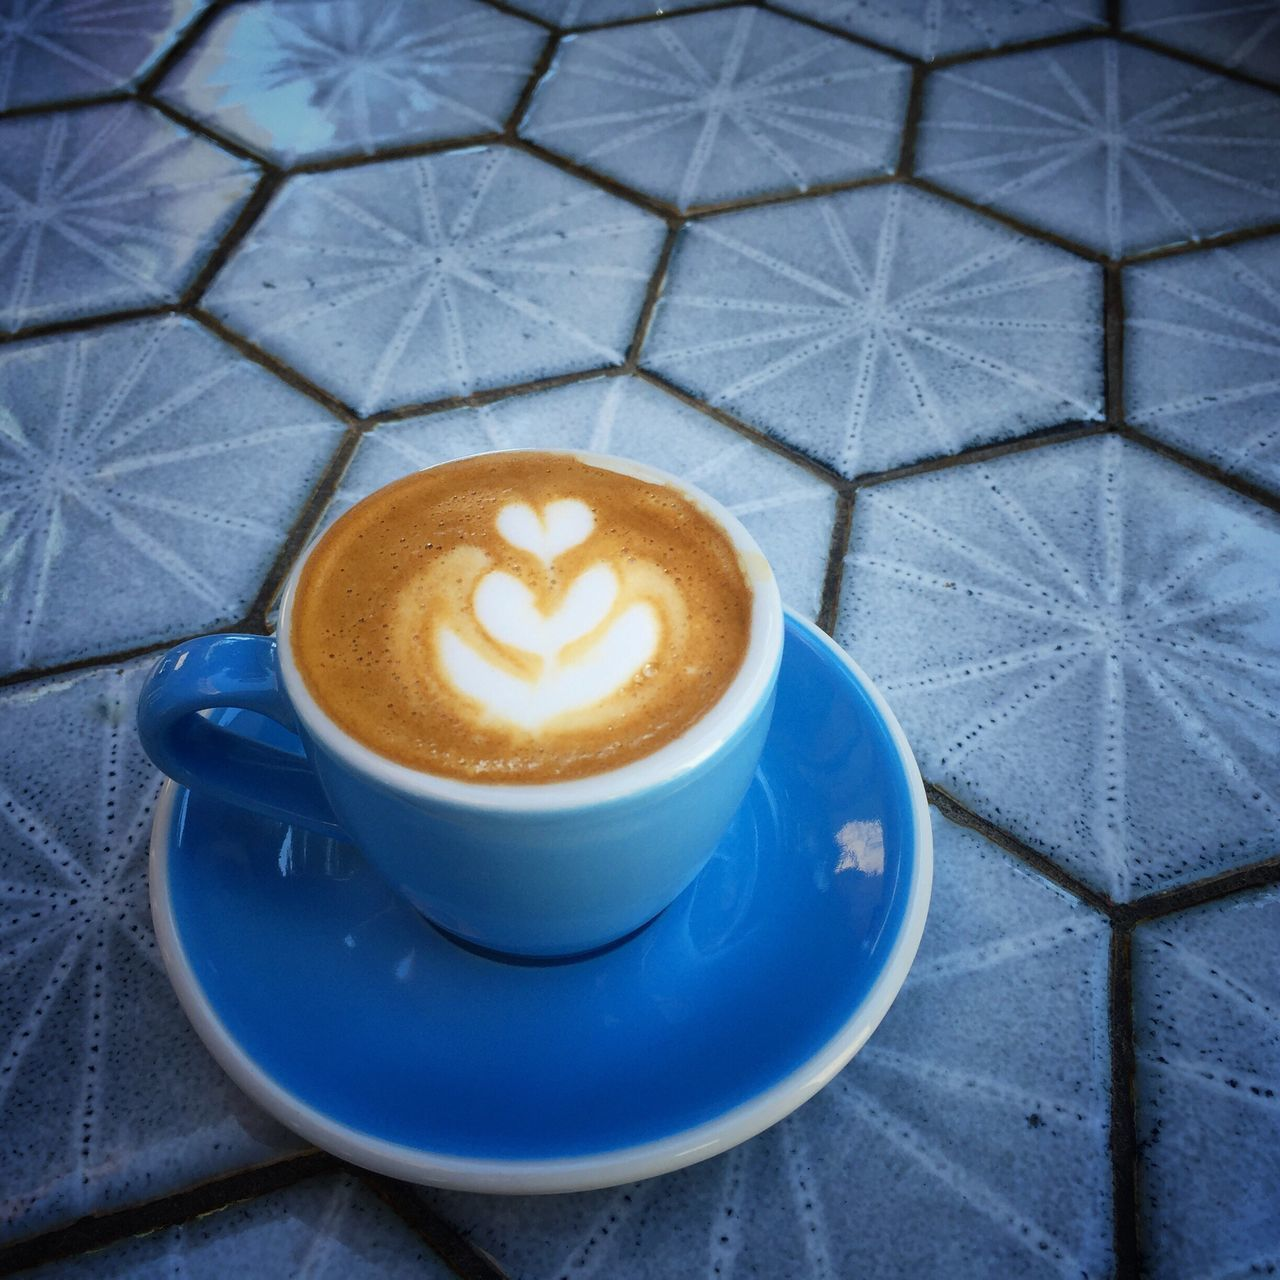 coffee cup, refreshment, coffee - drink, drink, frothy drink, food and drink, table, saucer, froth art, indoors, cappuccino, no people, close-up, freshness, day